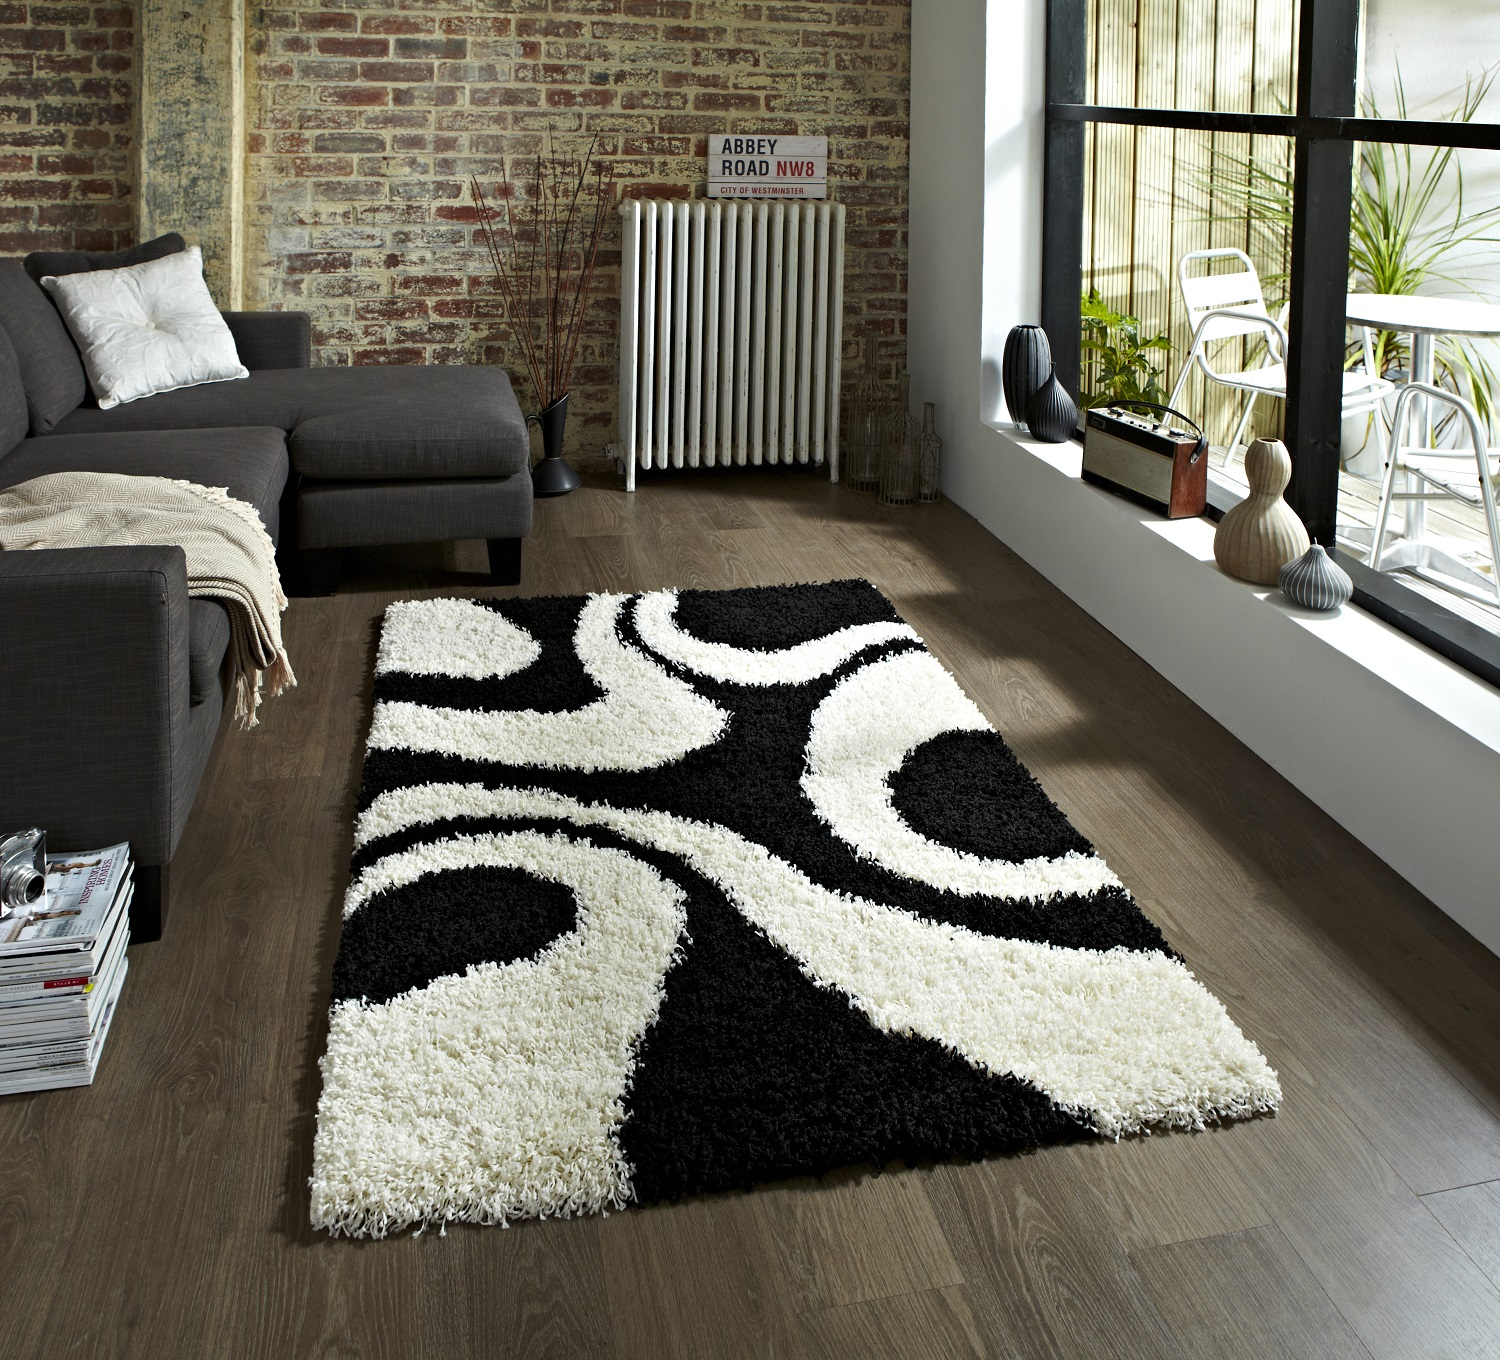 Black And White Extra Large Rug: Shaggy Pile Rug Or Runner Machine Made Warped Circle